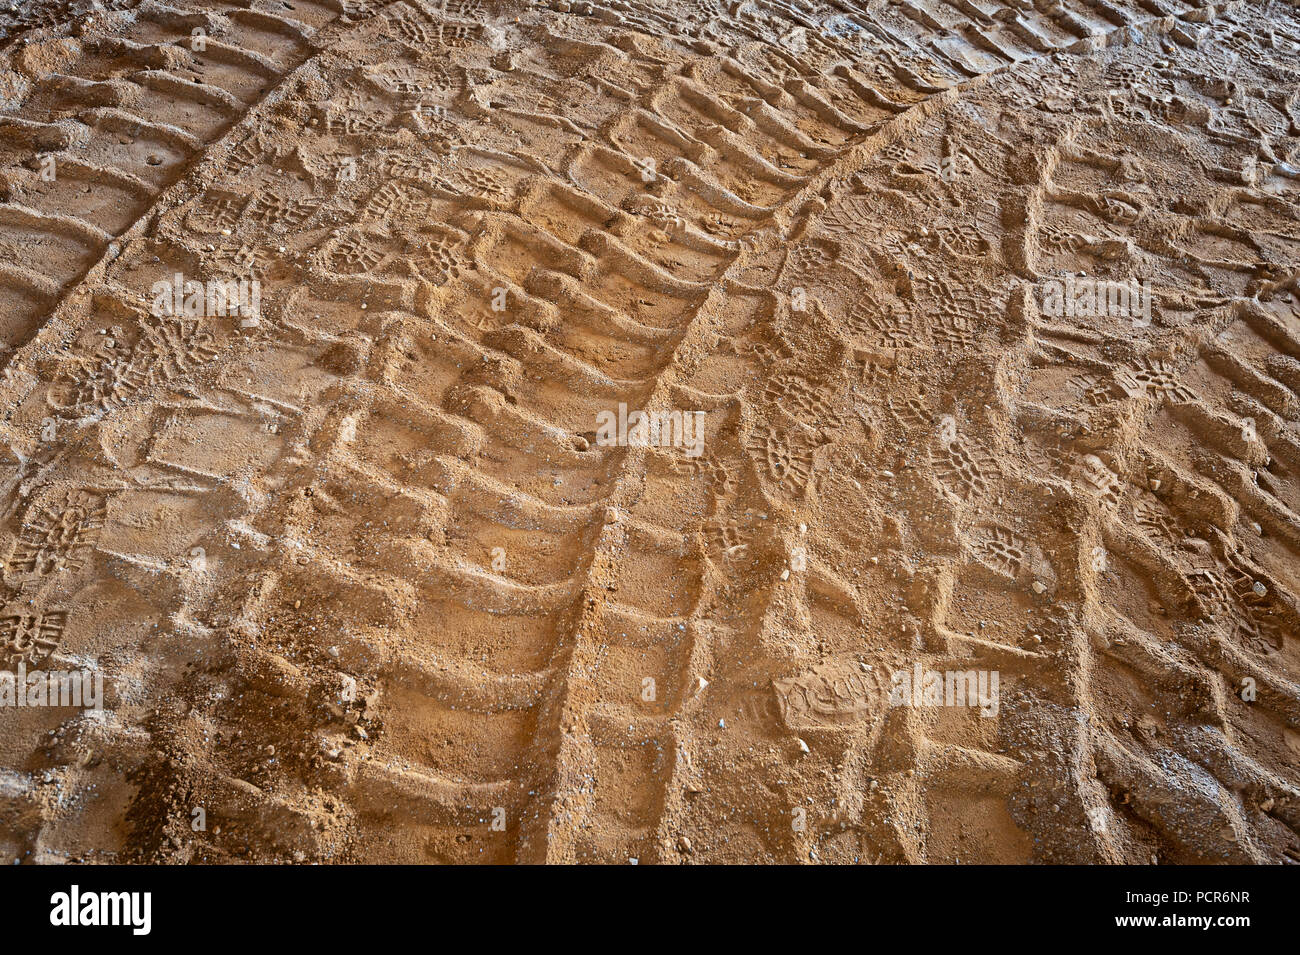 Truck Tire Tracks In Sand At Construction Site, New jersey, USA - Stock Image